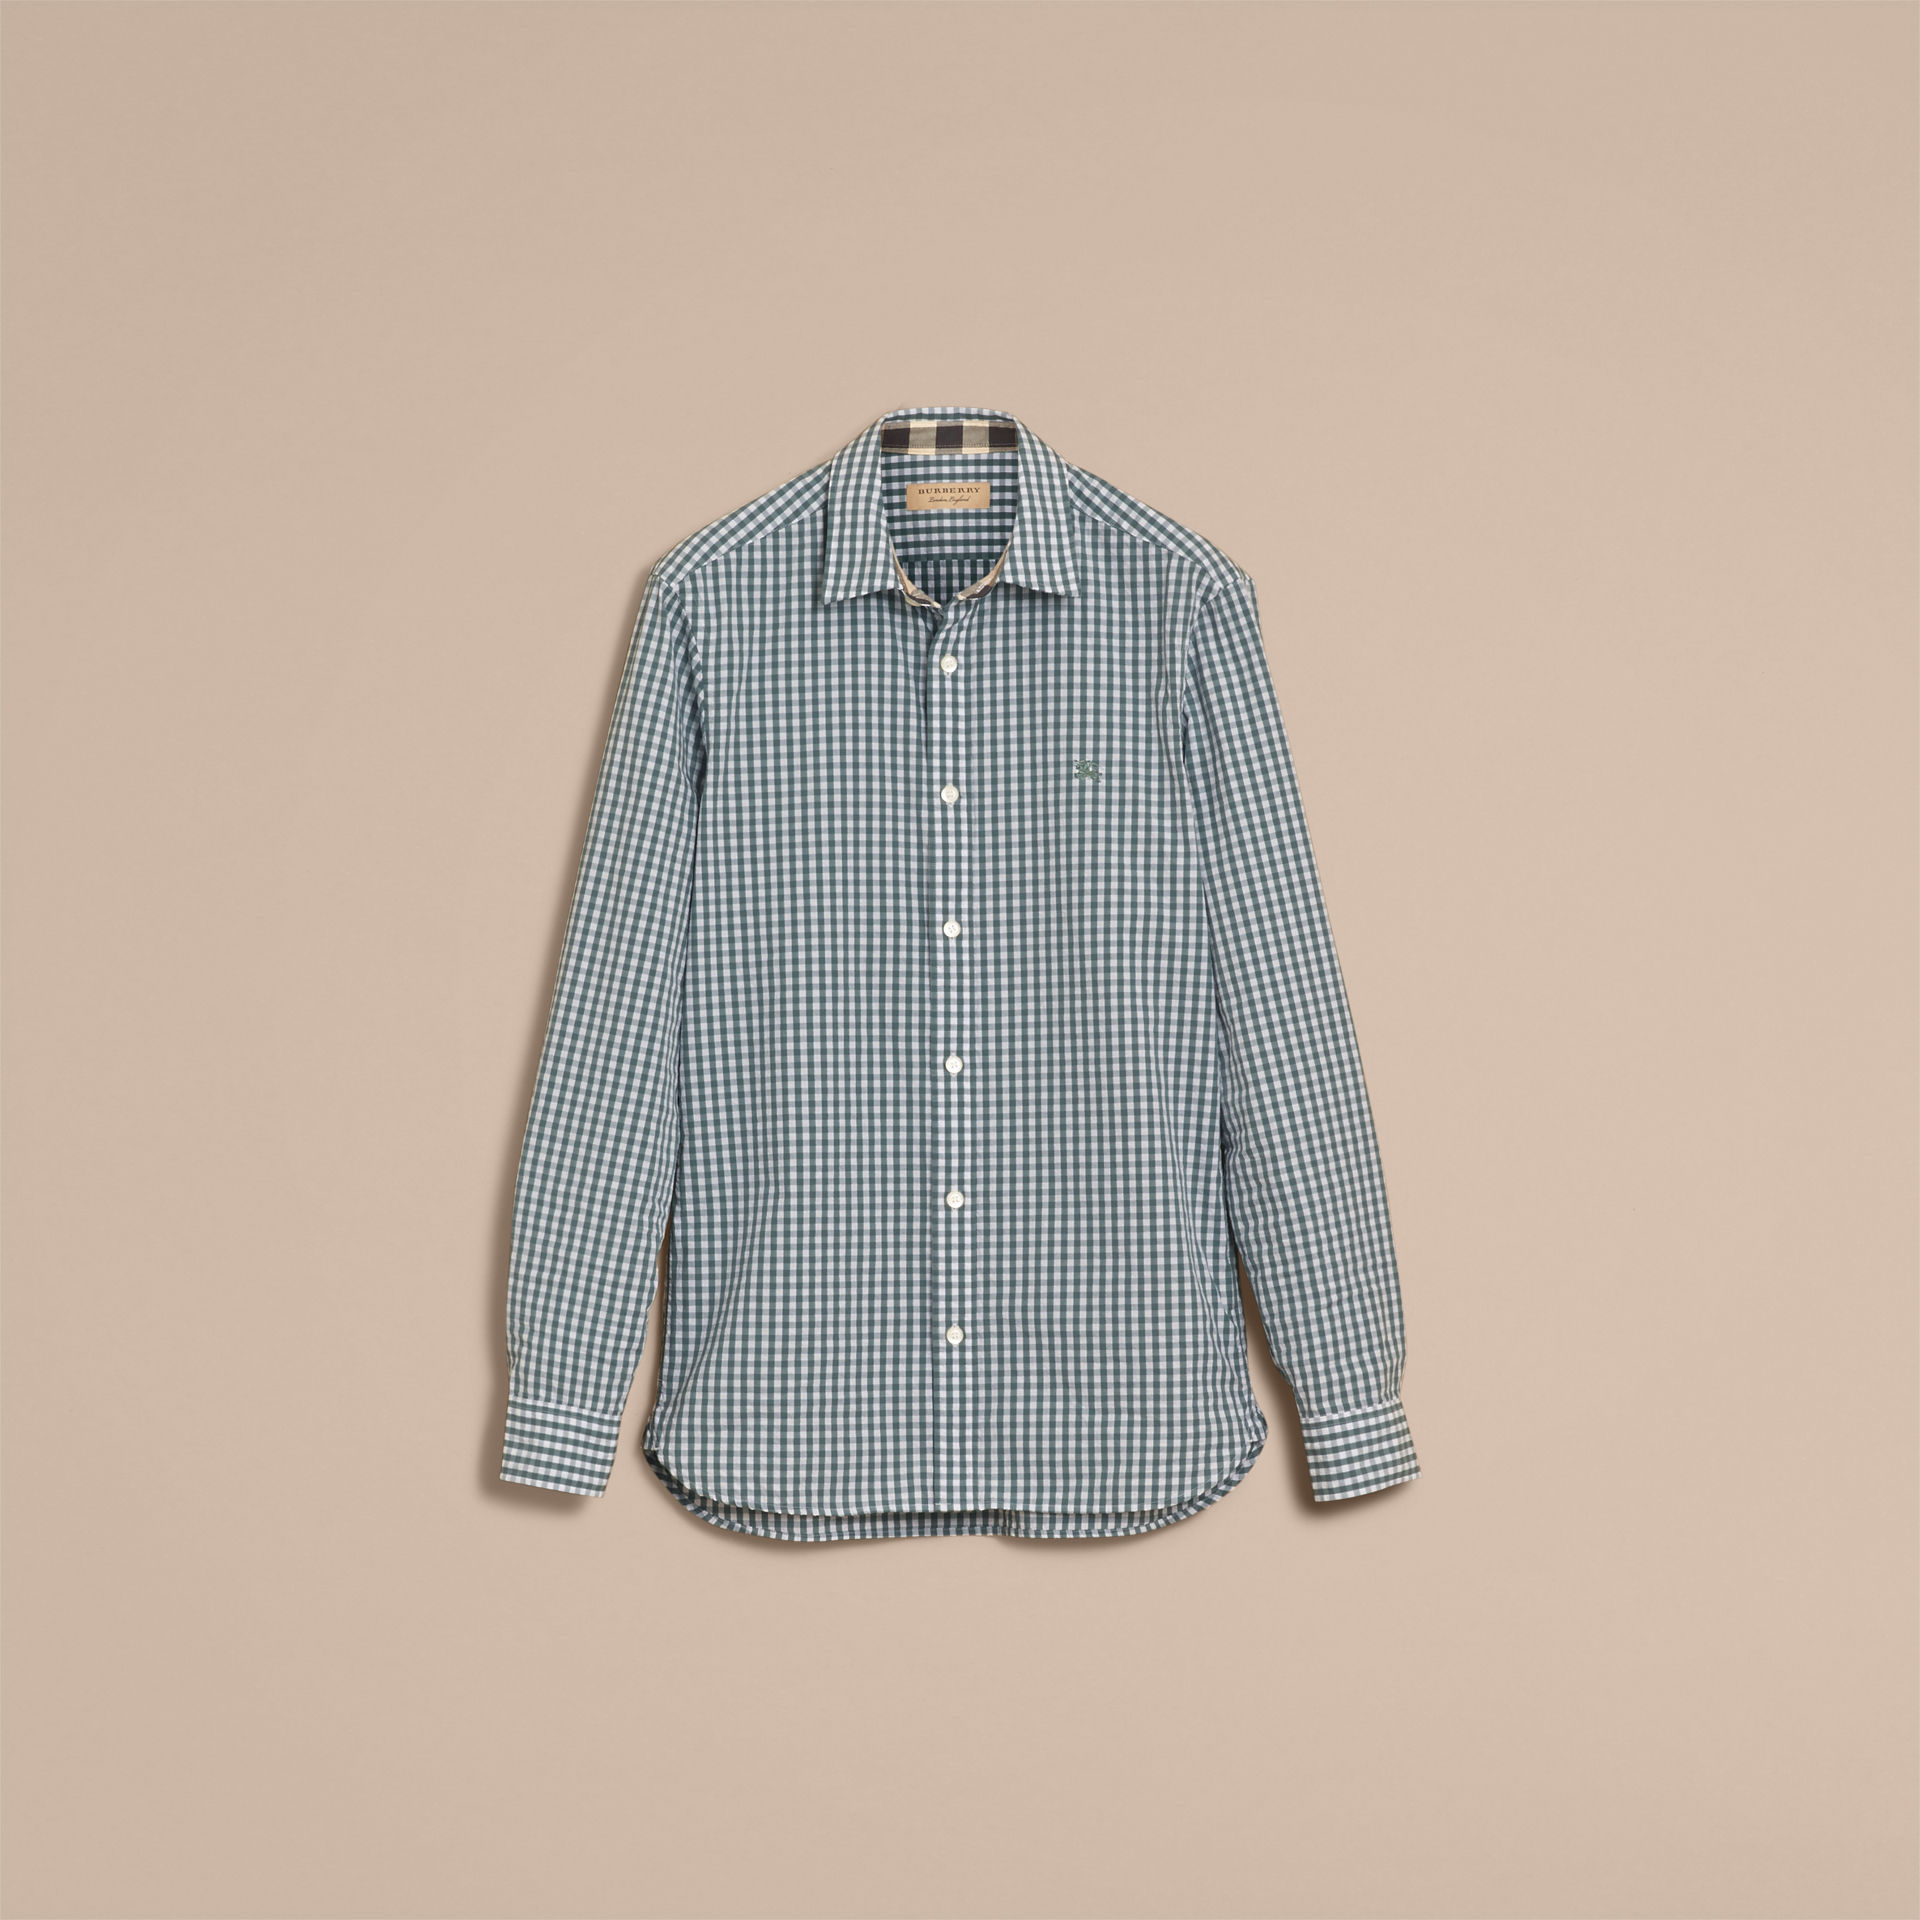 Burberry Dusty Teal Blue Gingham Cotton Poplin Shirt with Check Detail